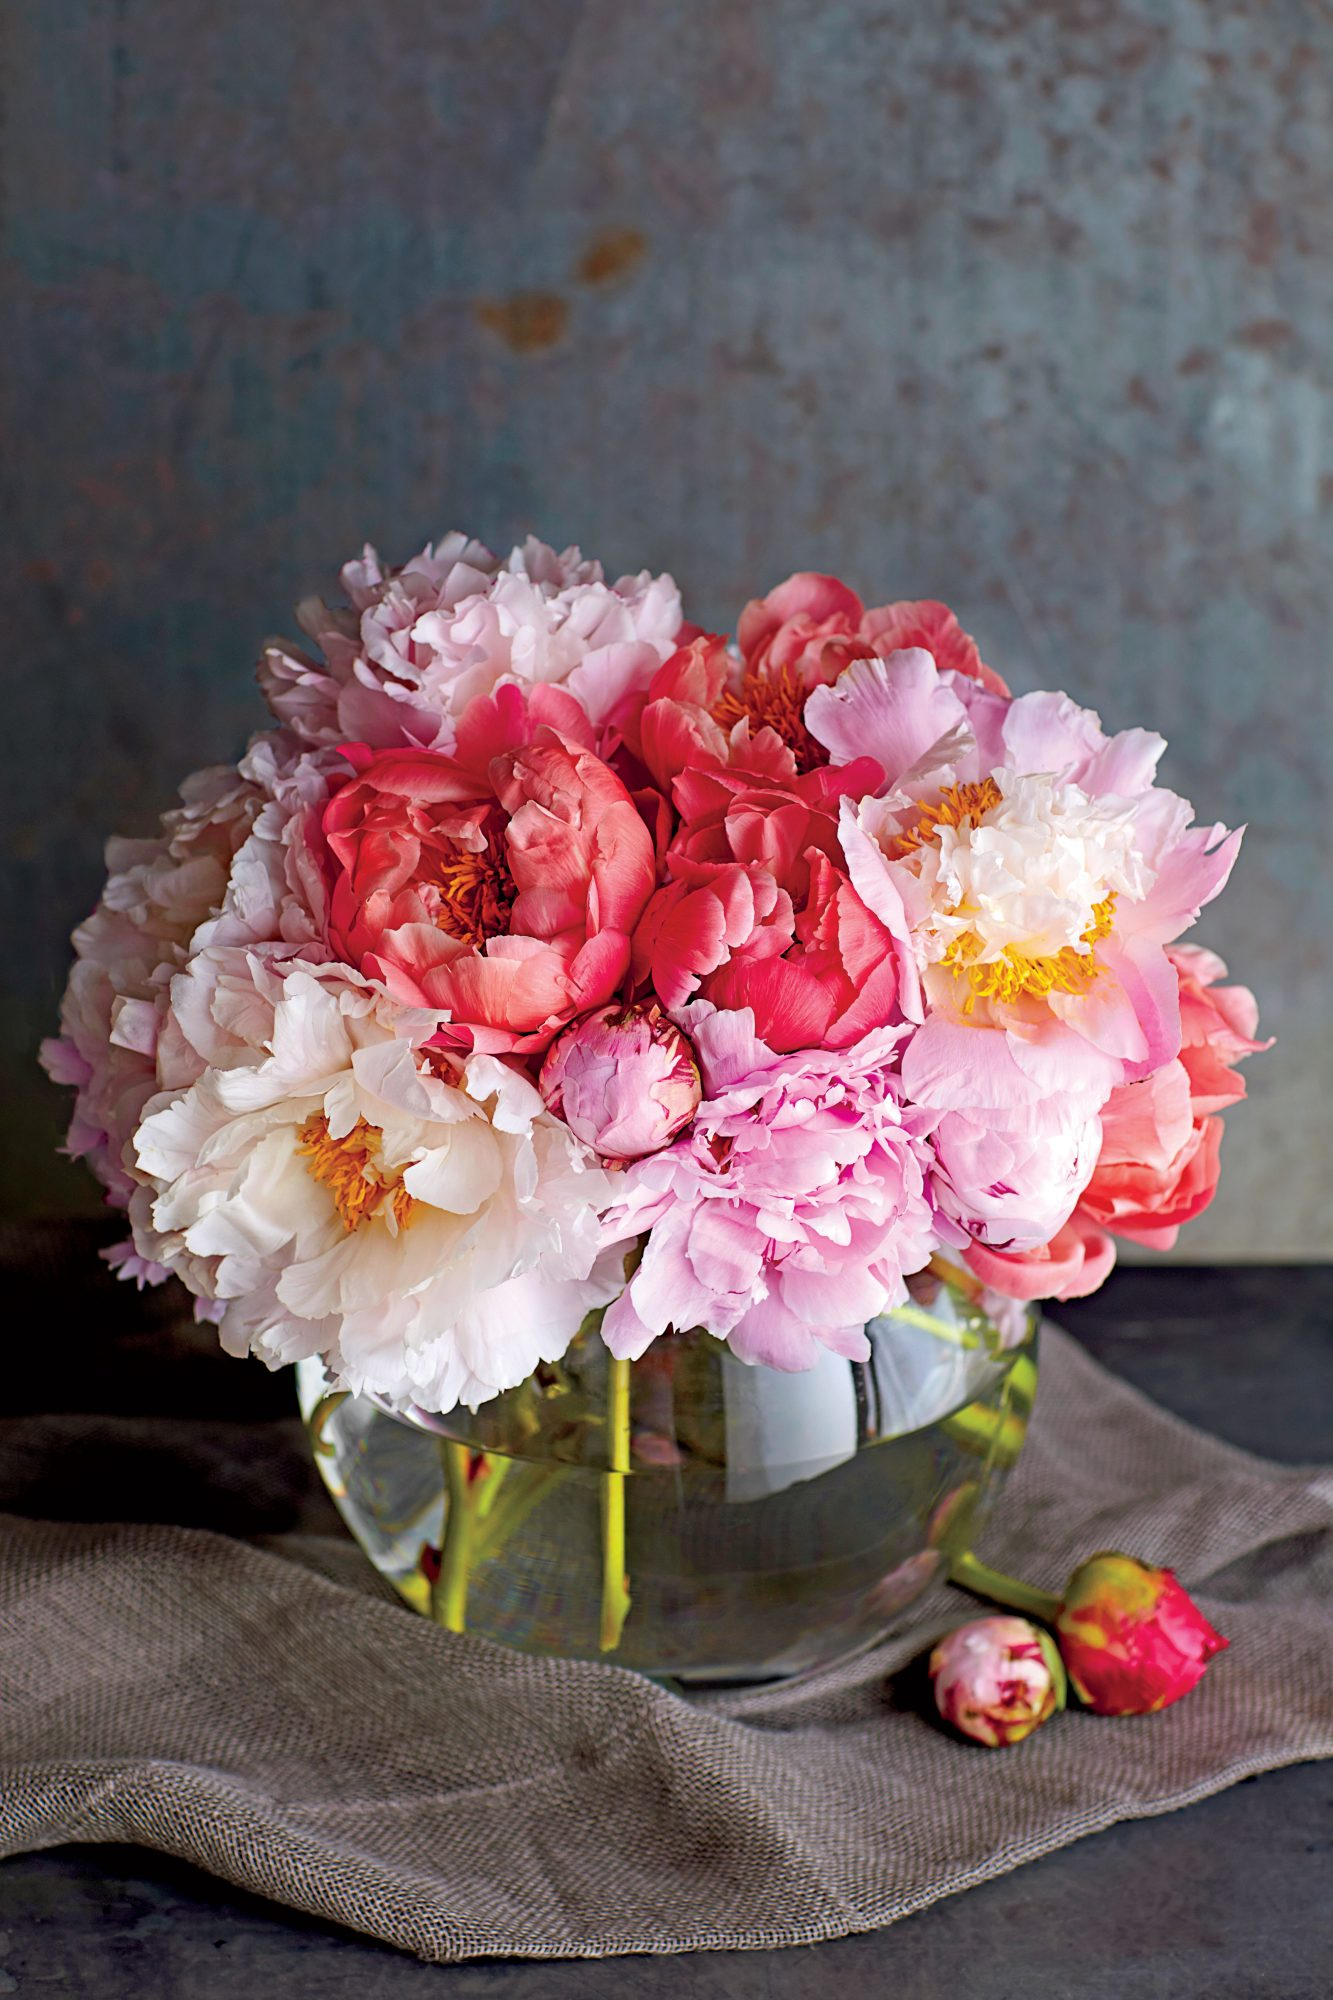 5 Things You Need to Know For Growing Peonies - Southern Living